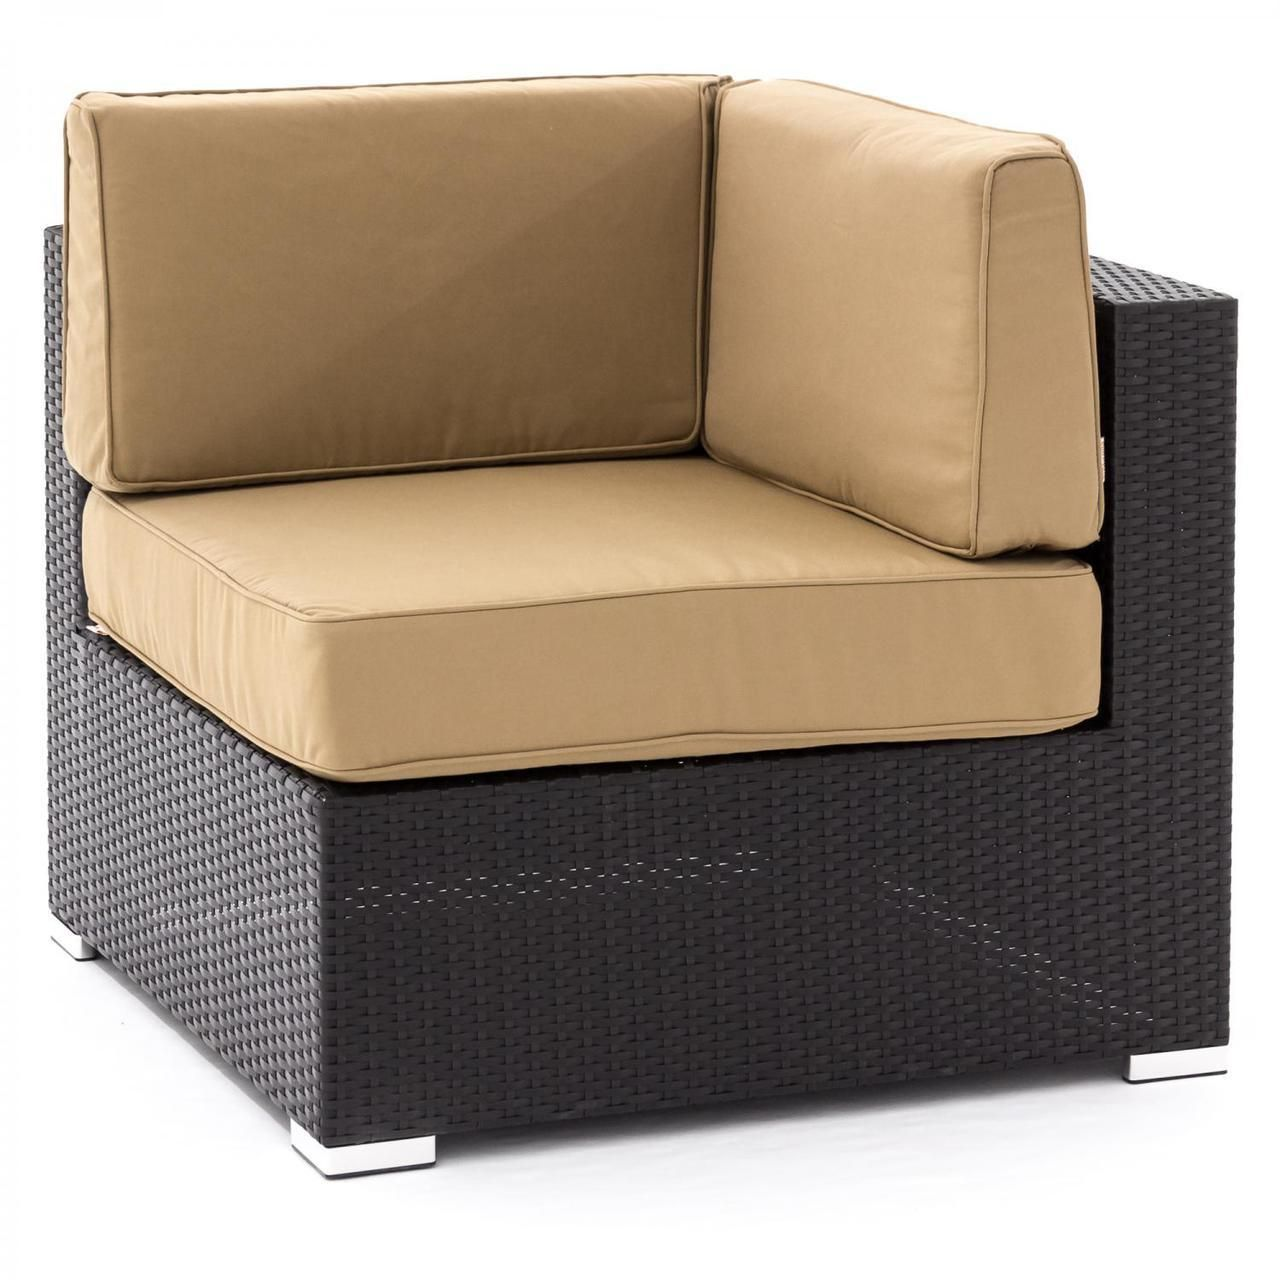 Pelican Point Resin Wicker Patio Corner Chair Sectional Piece - Beach Expression